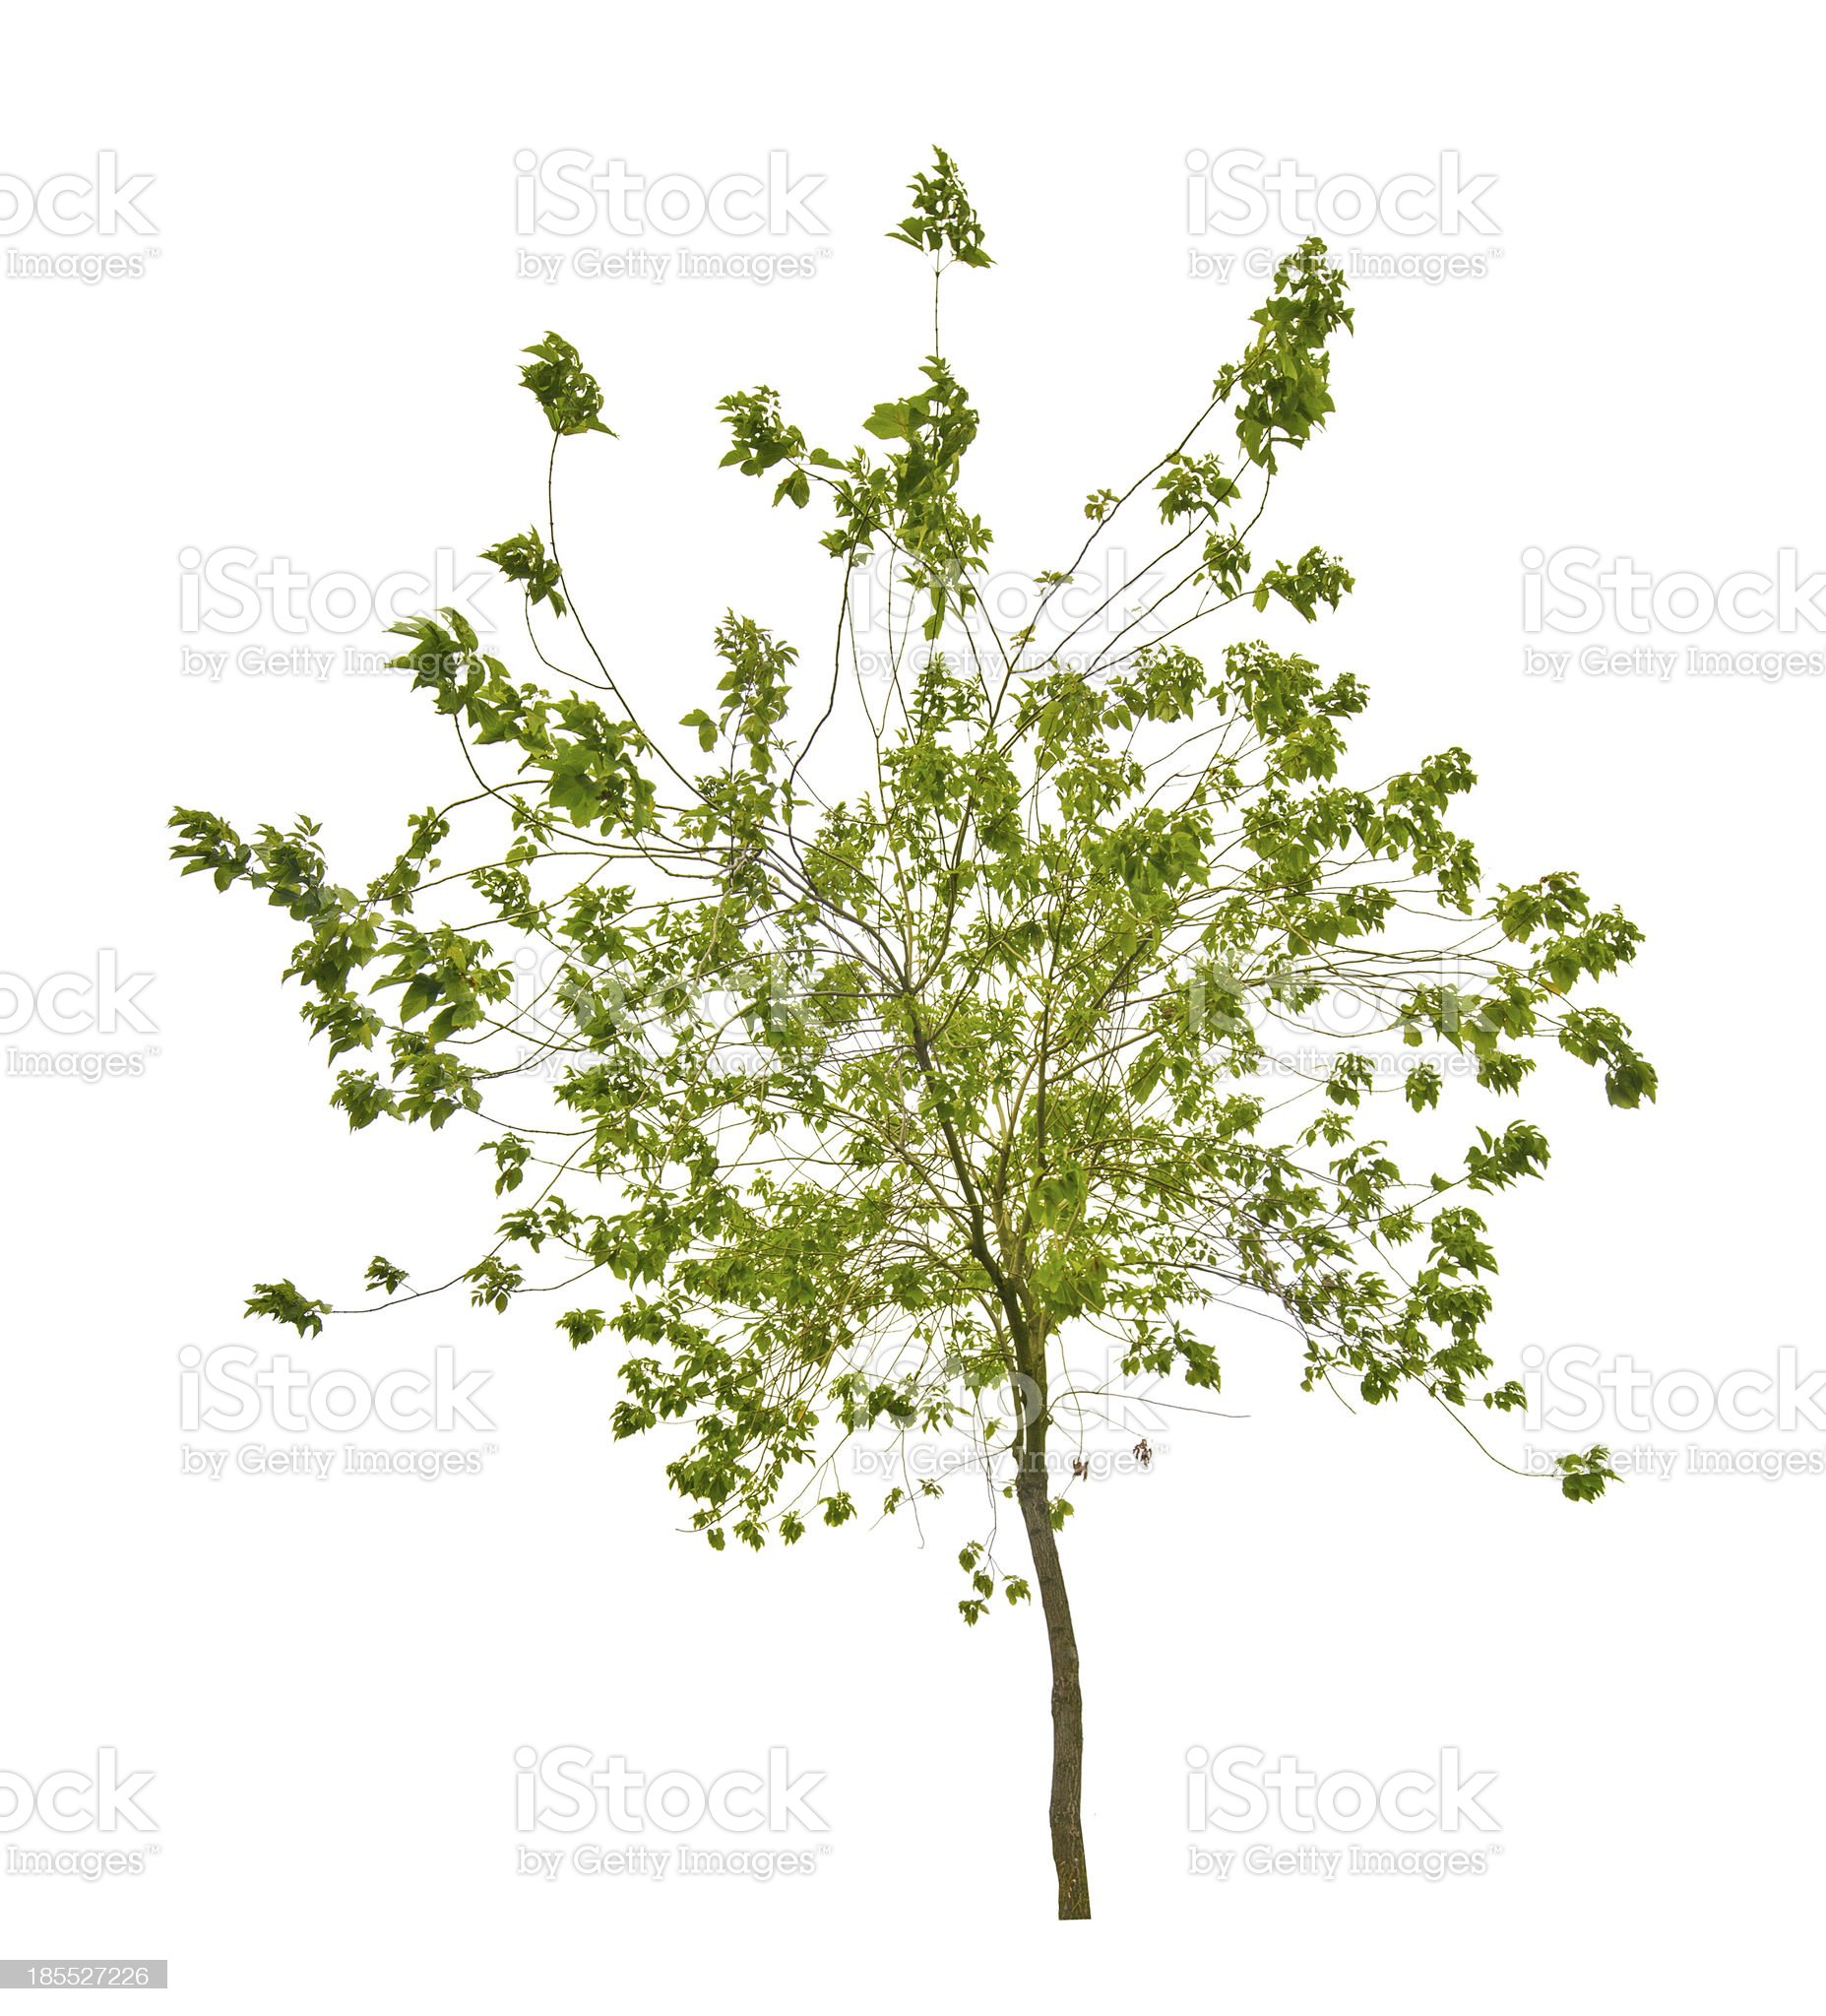 isolated small tree with green leaves royalty-free stock photo